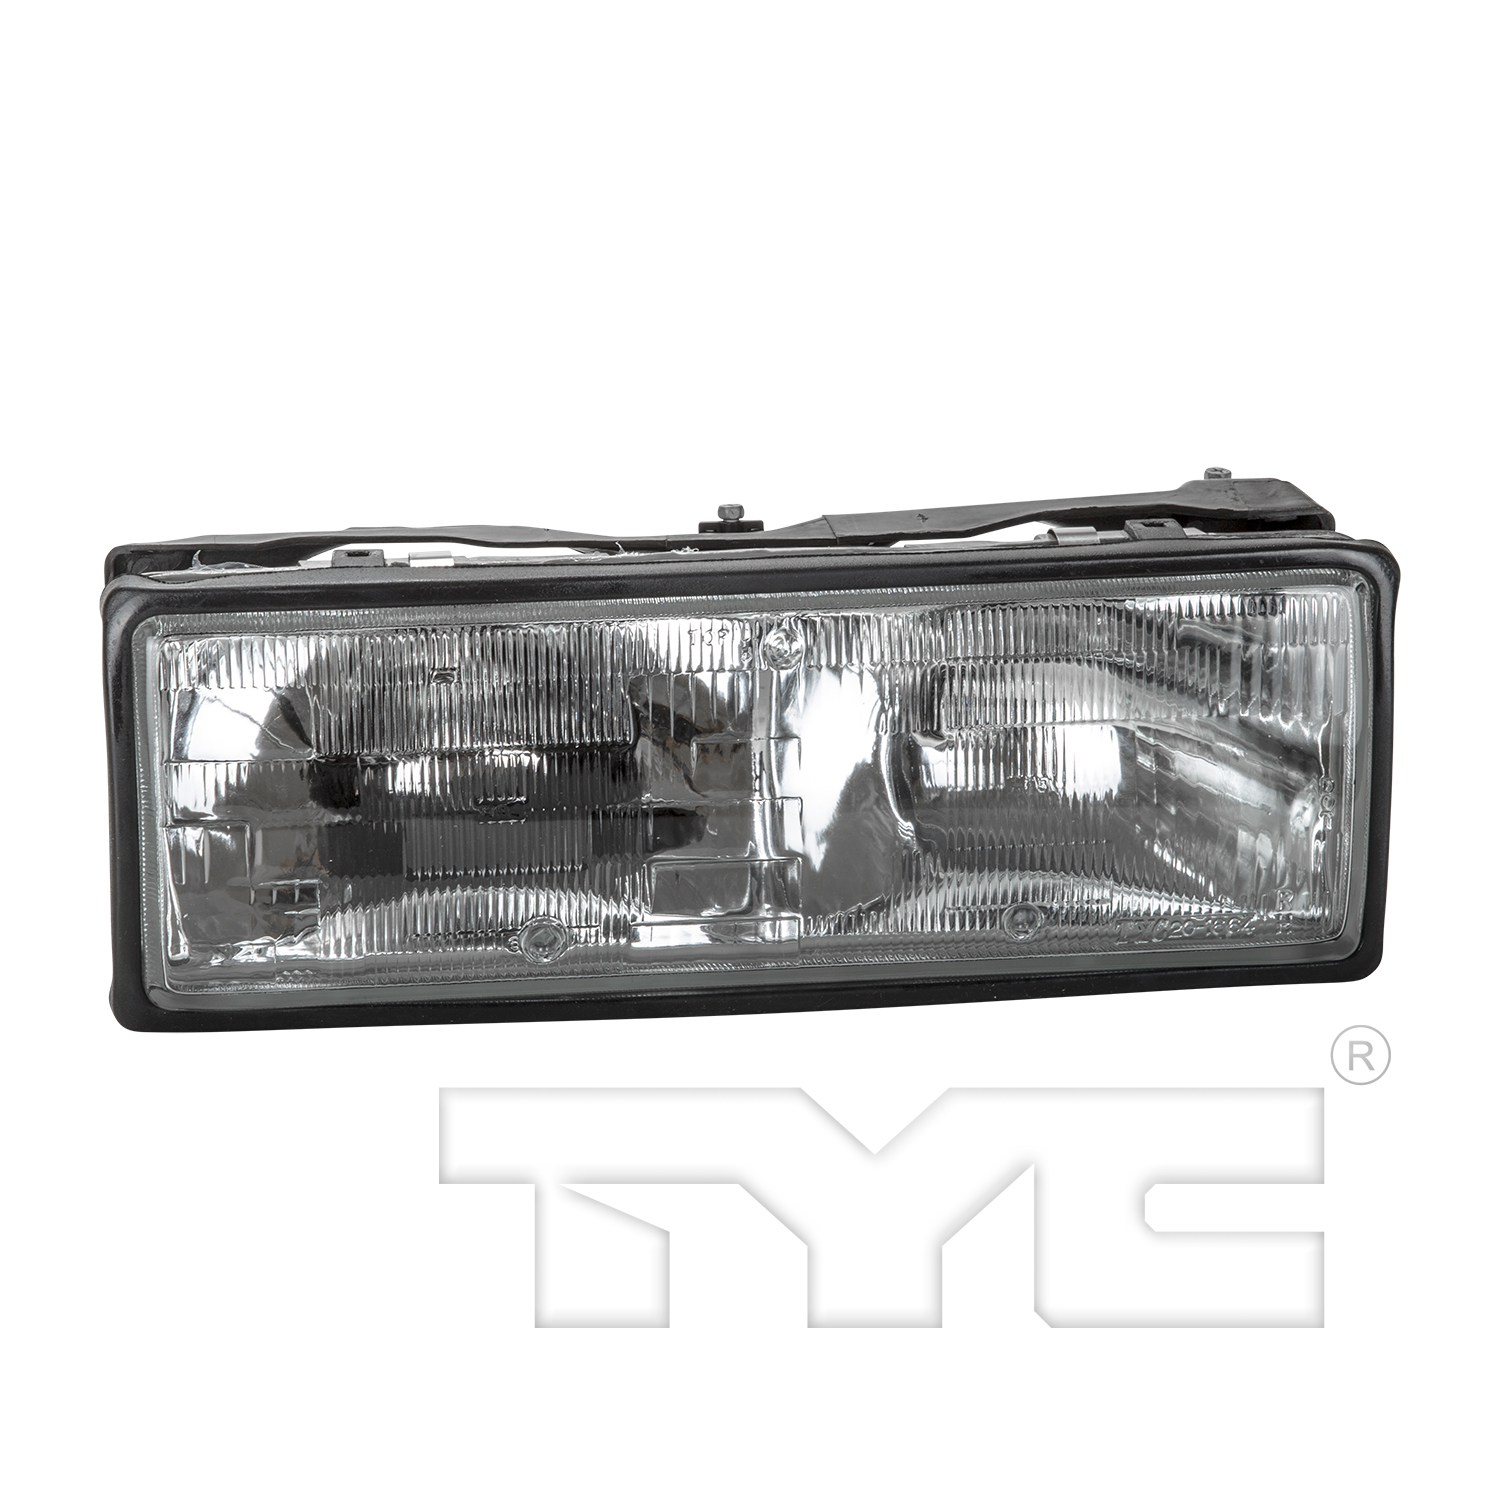 Aftermarket HEADLIGHTS for CHEVROLET - CAPRICE, CAPRICE,87-90,RIGHT HANDSIDE HEADLIGHT